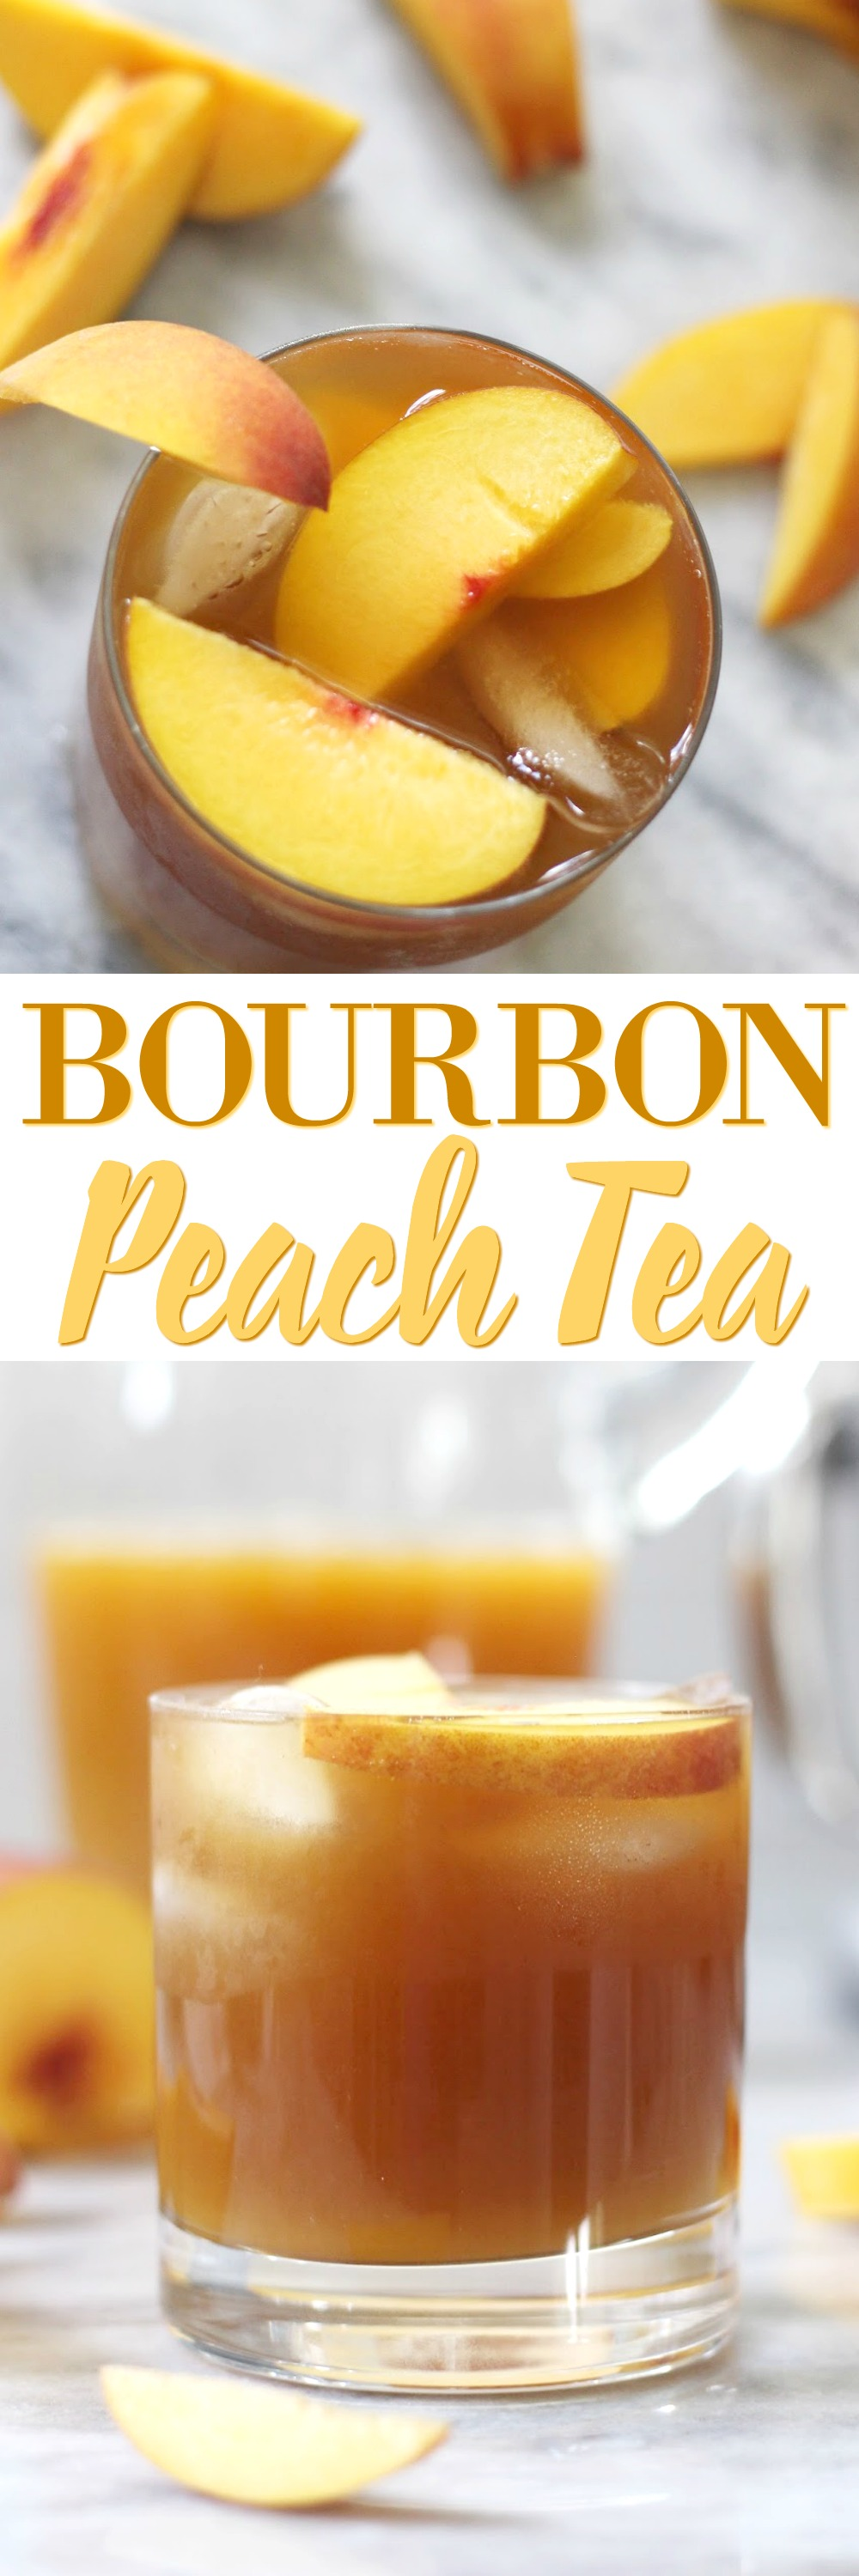 Bourbon Peach Tea